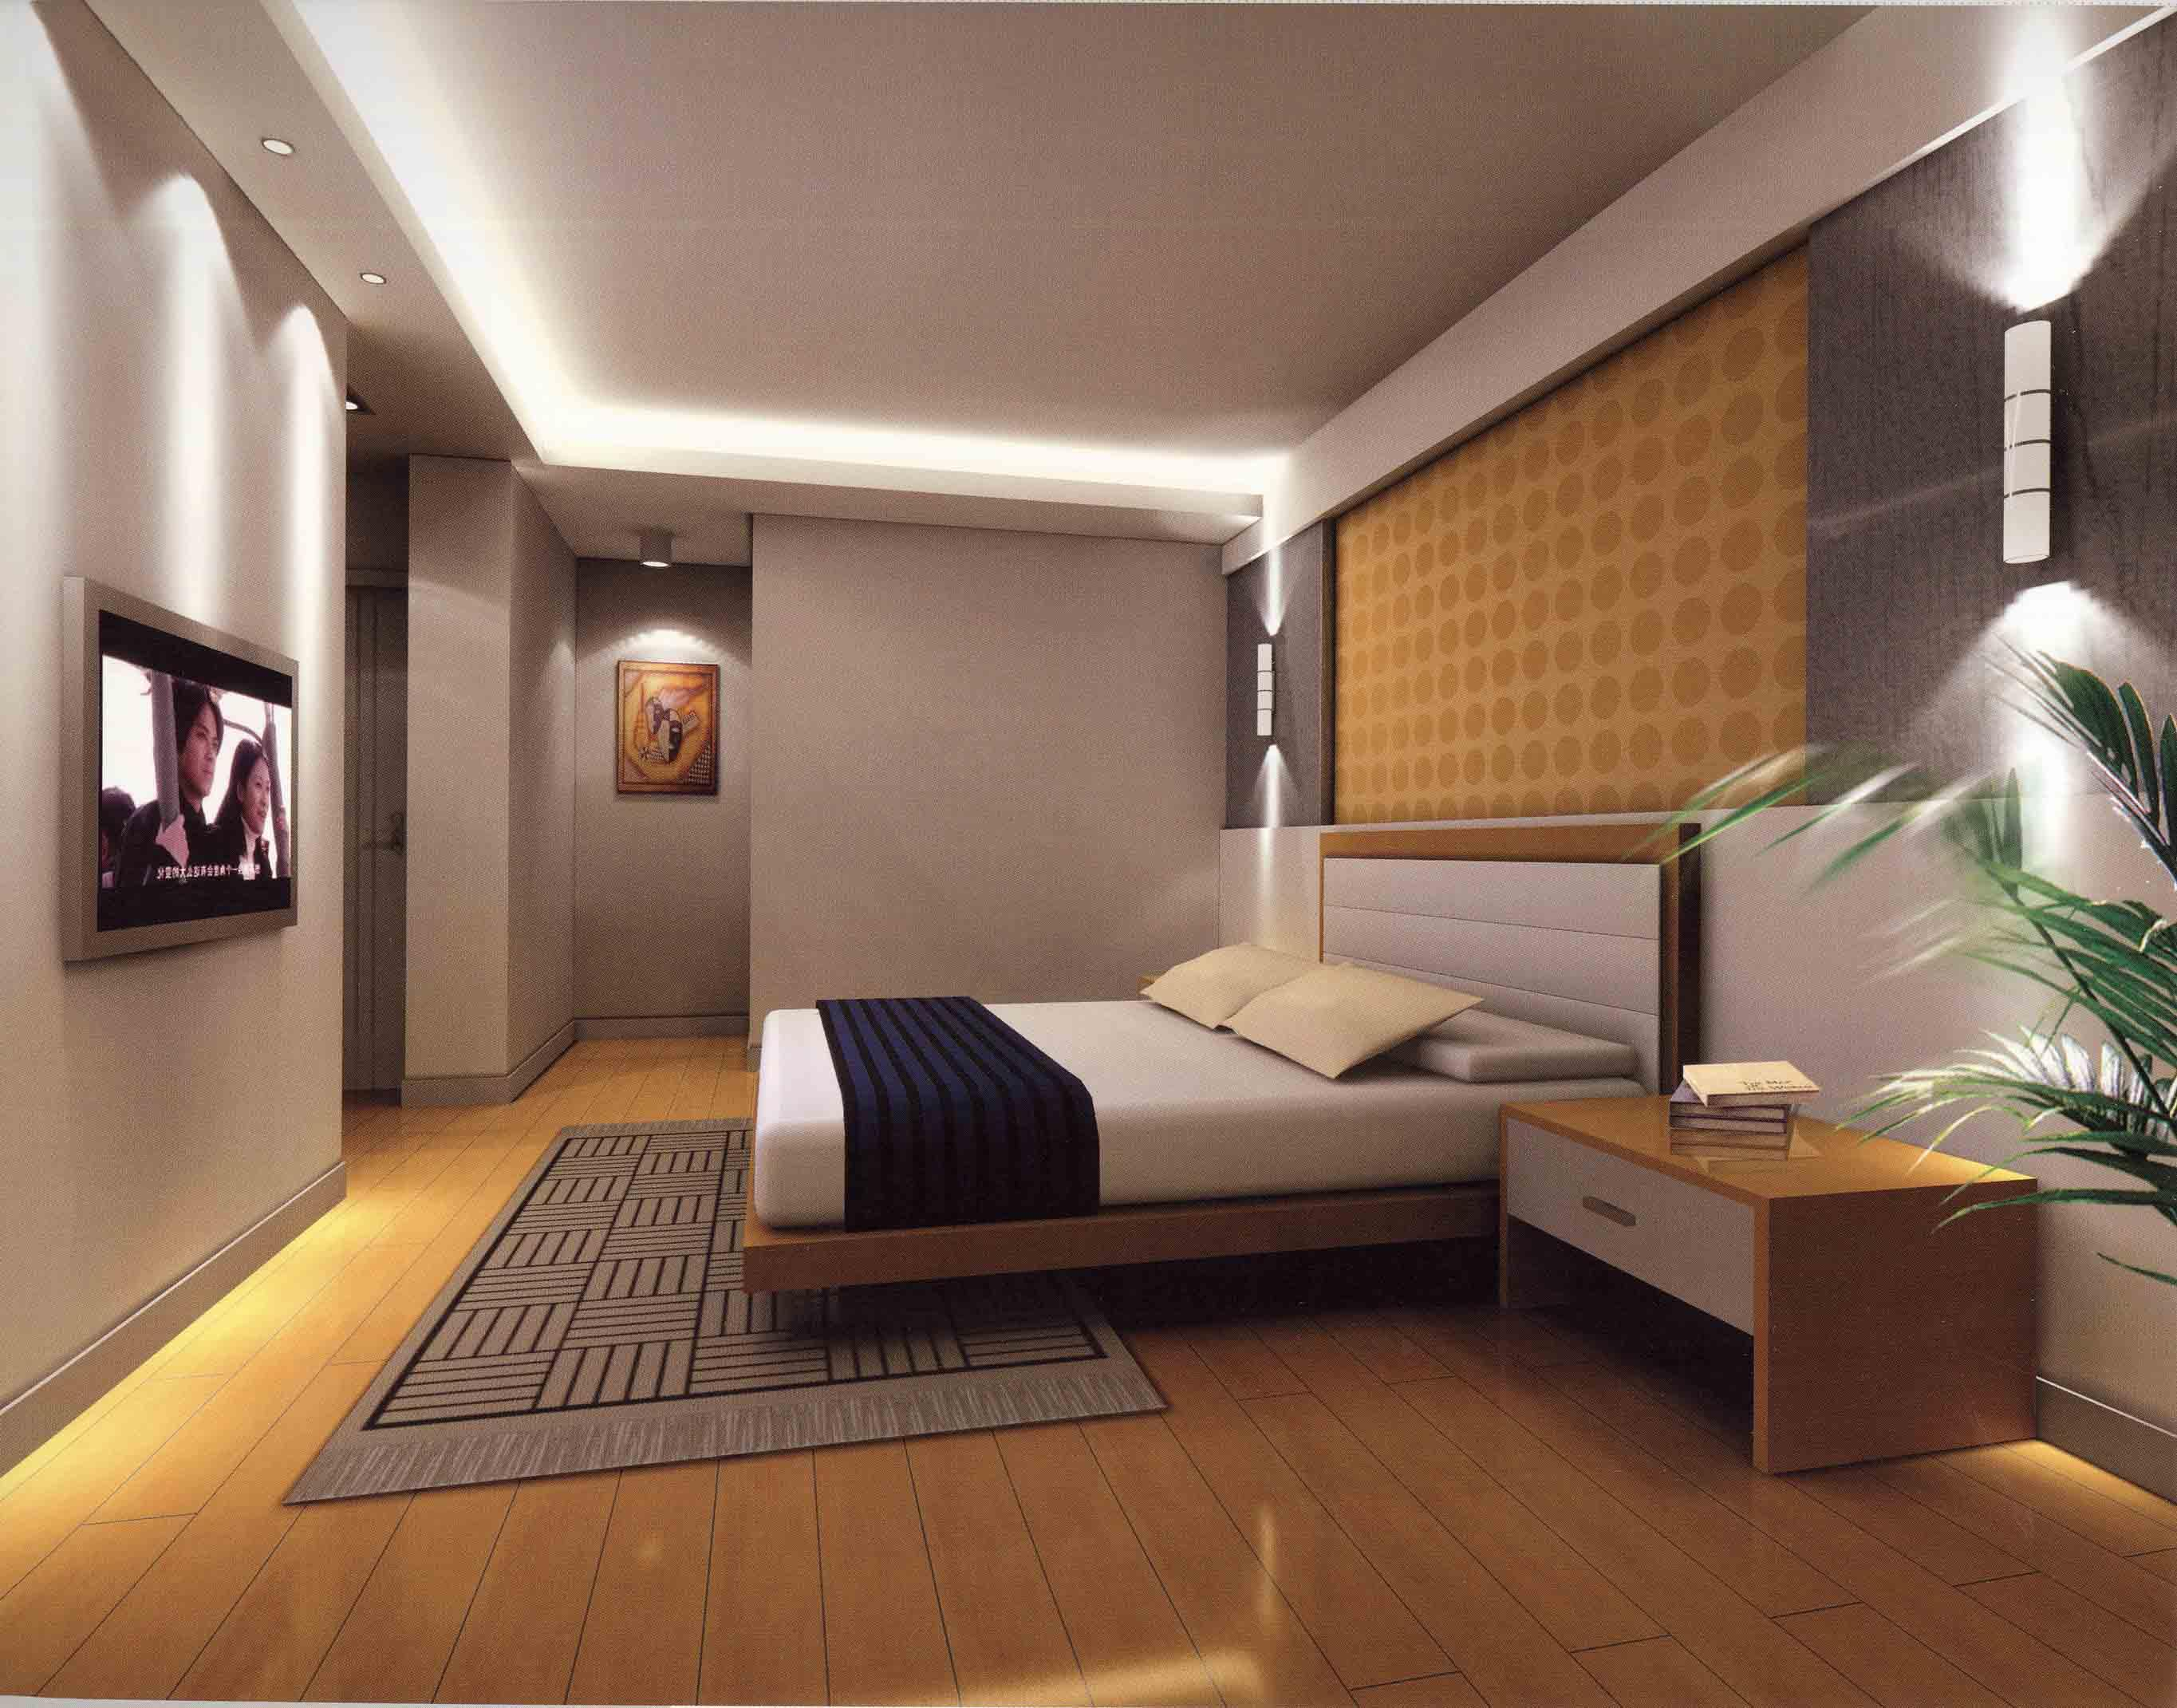 25 cool bedroom designs collection for Master bedroom designs